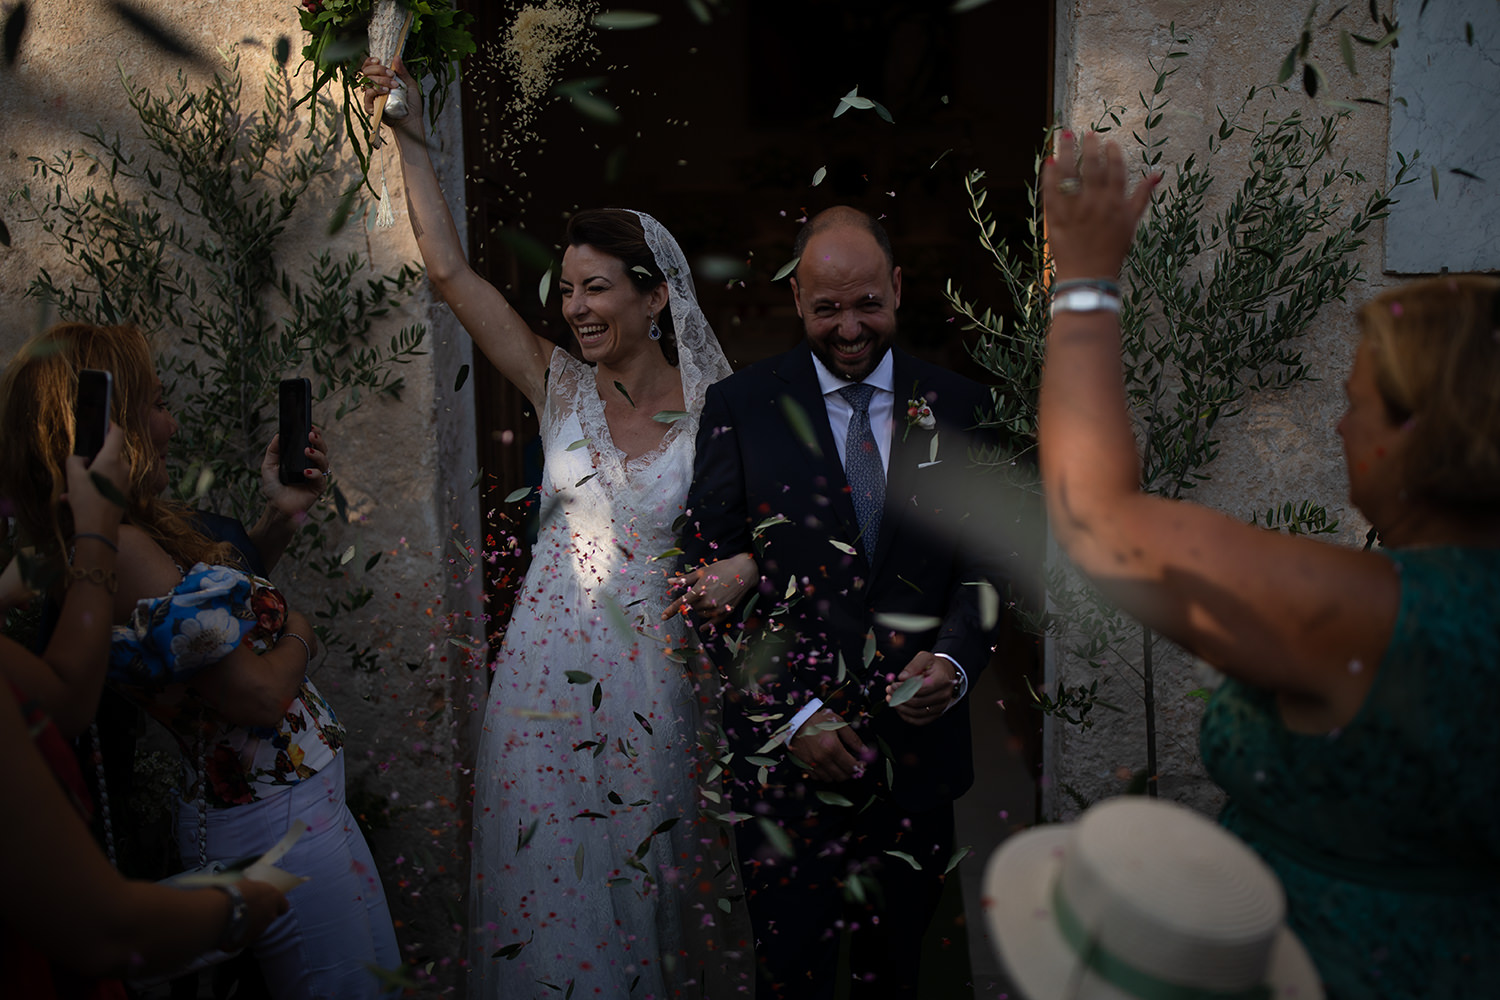 An unedited photo of a wedding couple that leaves the church, and the wedding guests throw confetti.